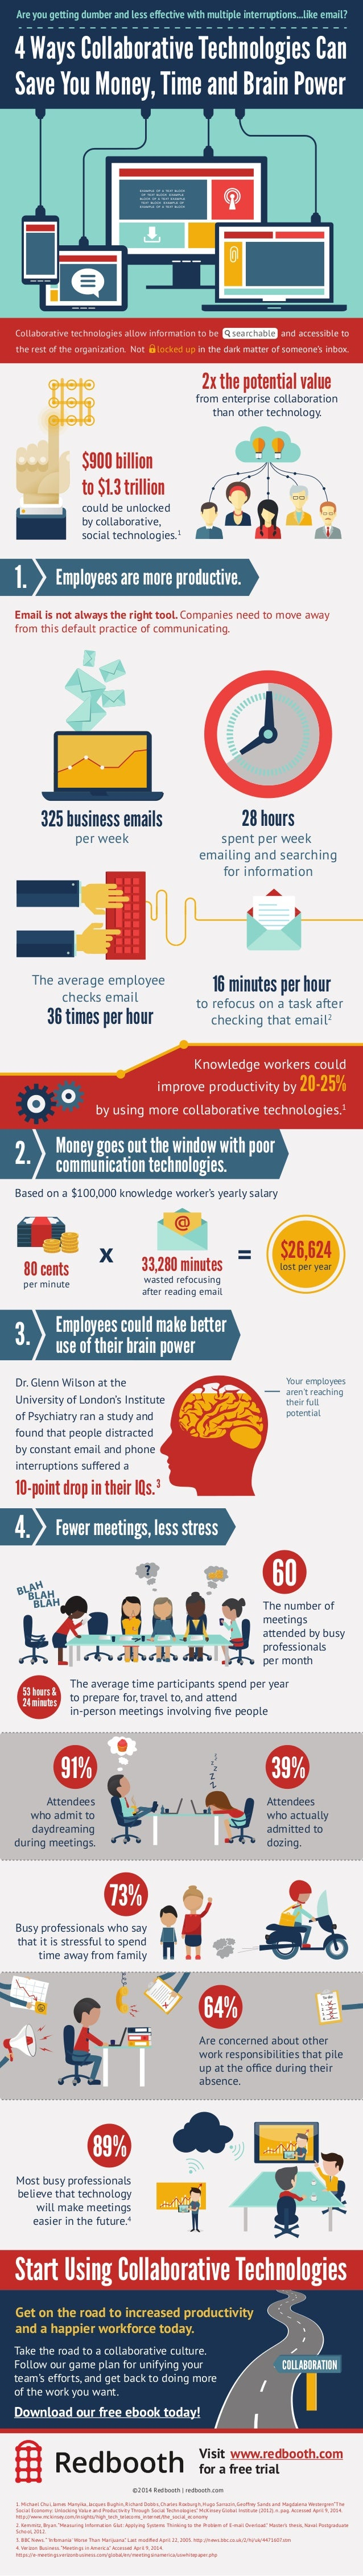 4 Ways Collaborative Technologies Can Save You Money, Time and Brain Power Are you getting dumber and less effective with ...